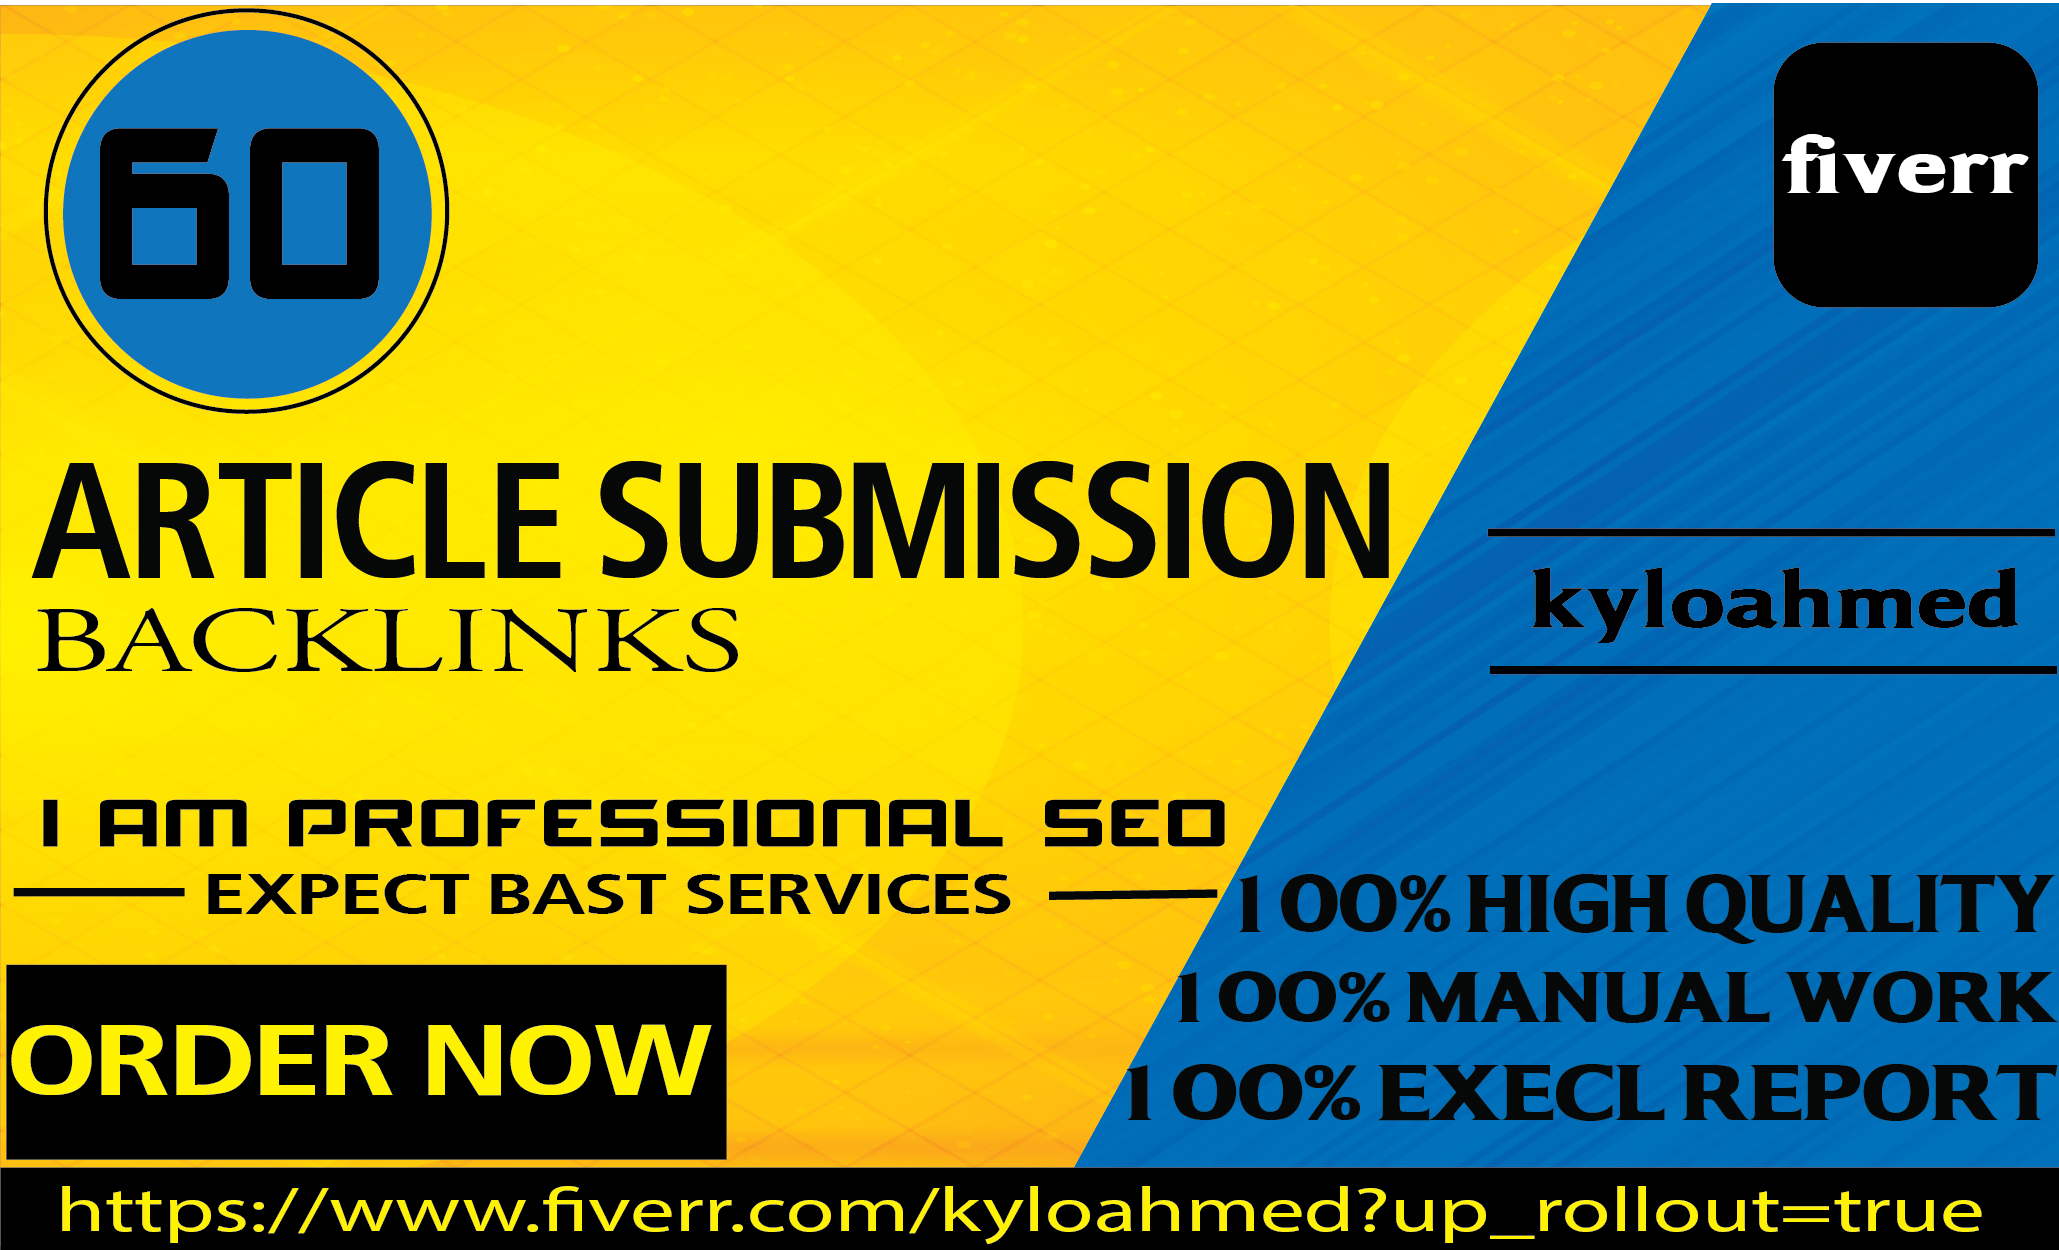 I will provide 60 article submission with high quality backlinks